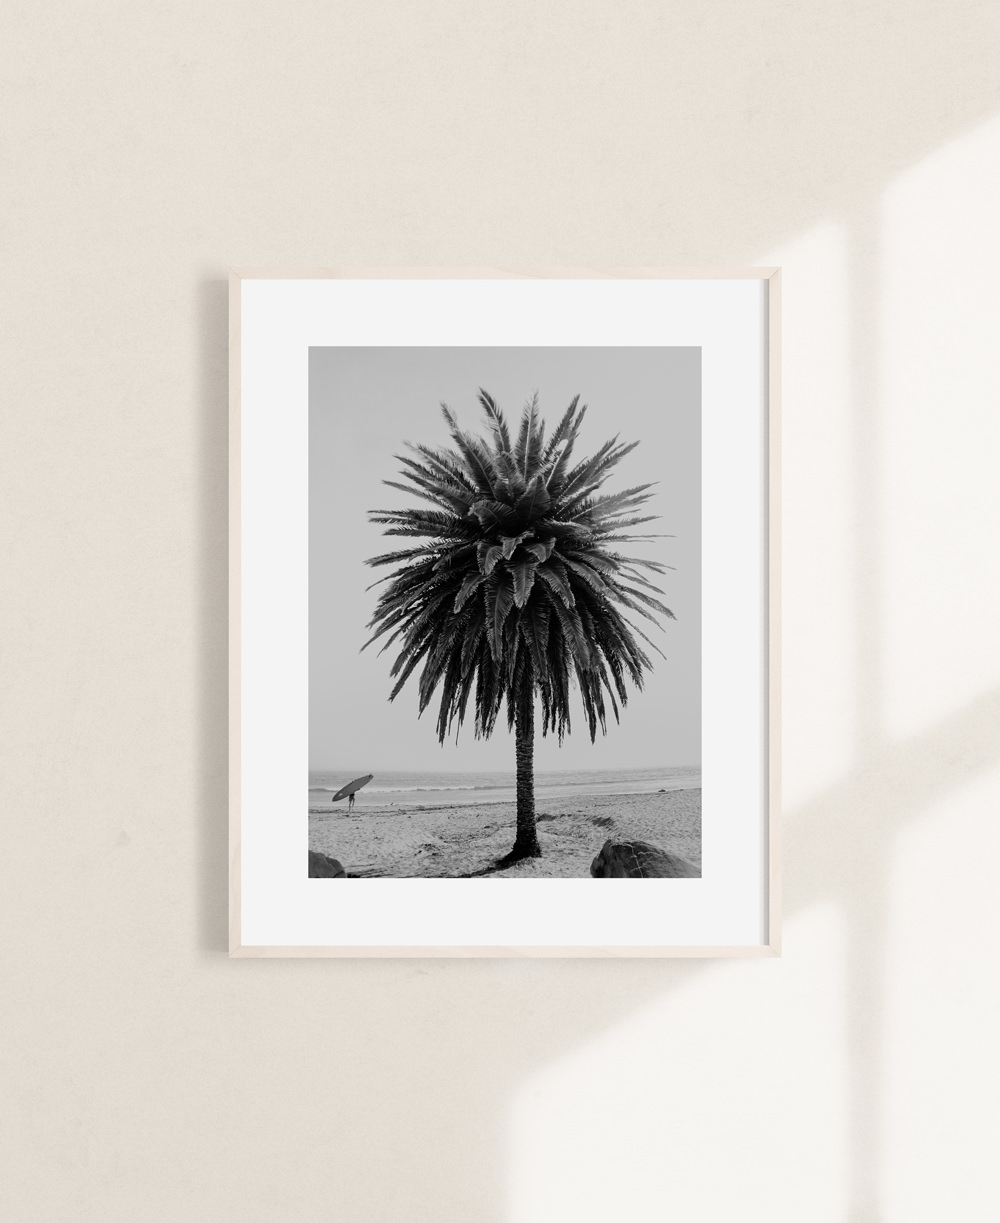 nicischwab-prints-015-california dreamin